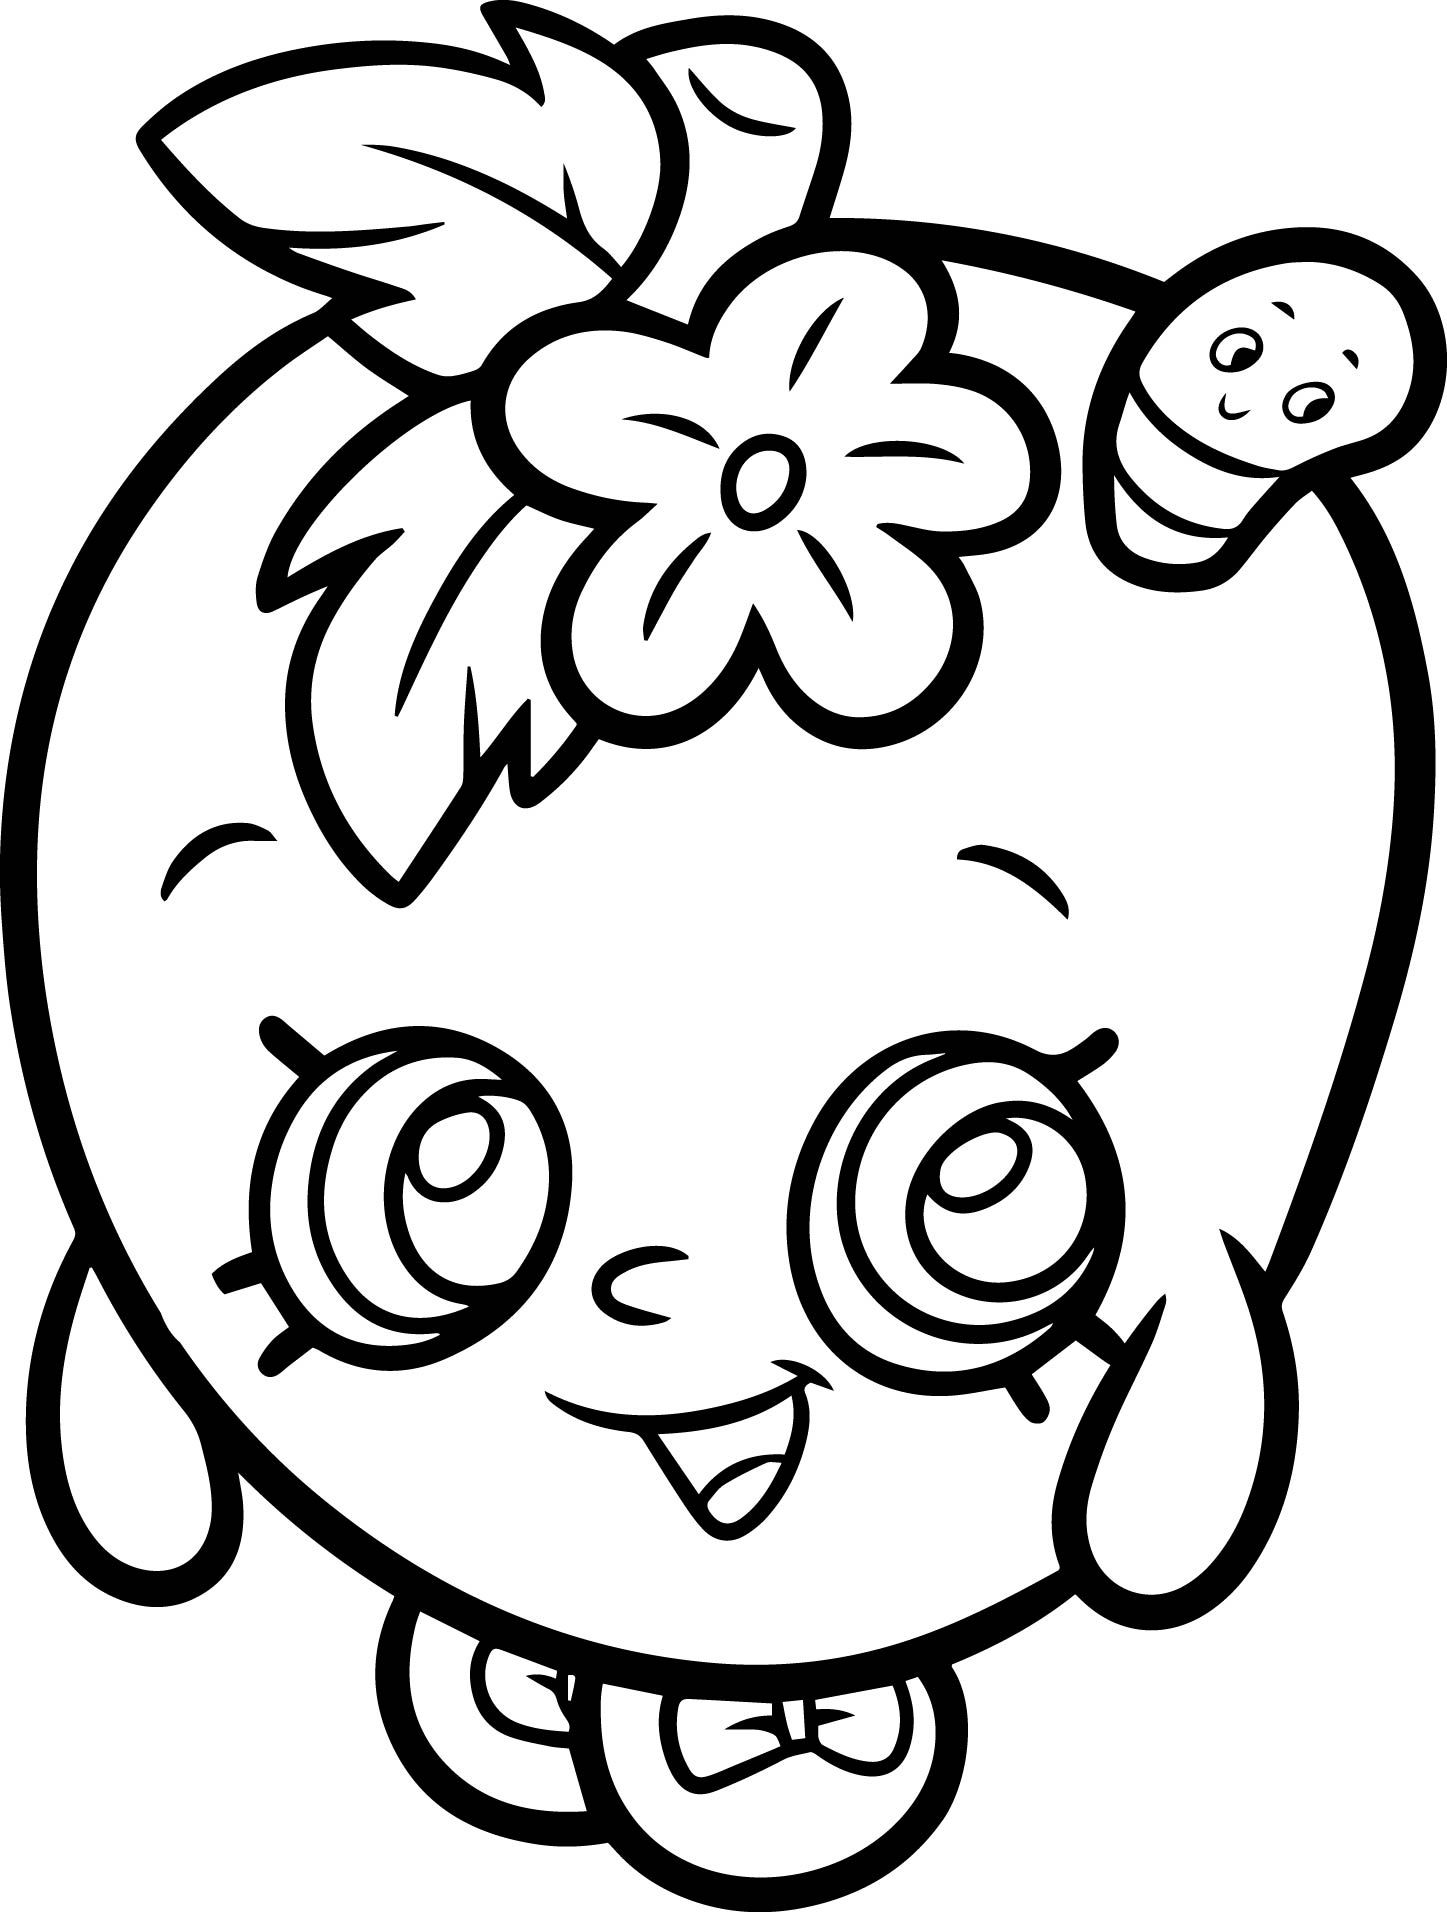 1447x1912 Apple Blossom From Shopkins Coloring Page Shopkins, Apples